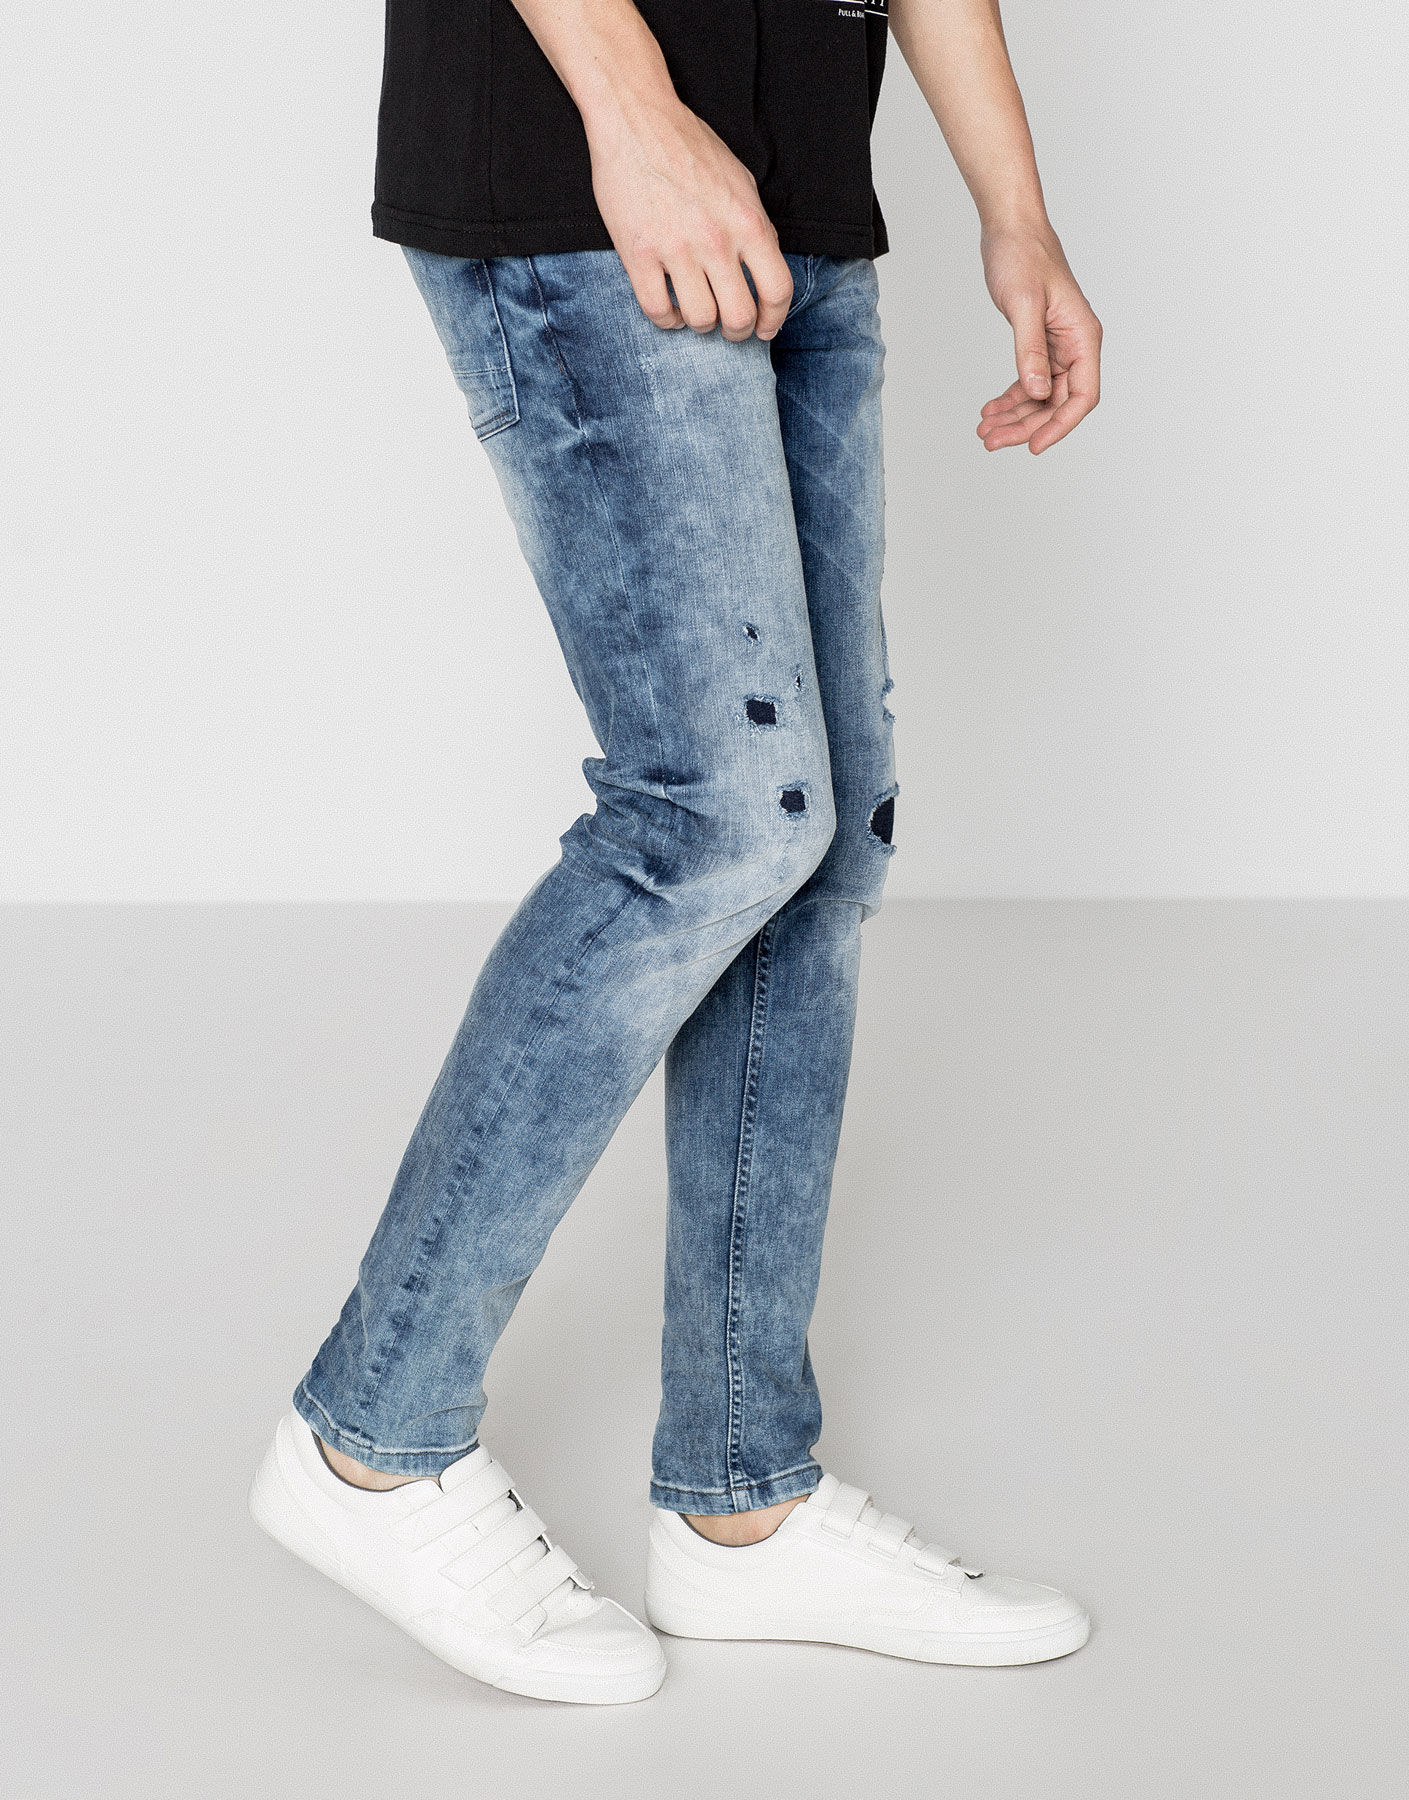 Big skinny fit jeans with rips and patches